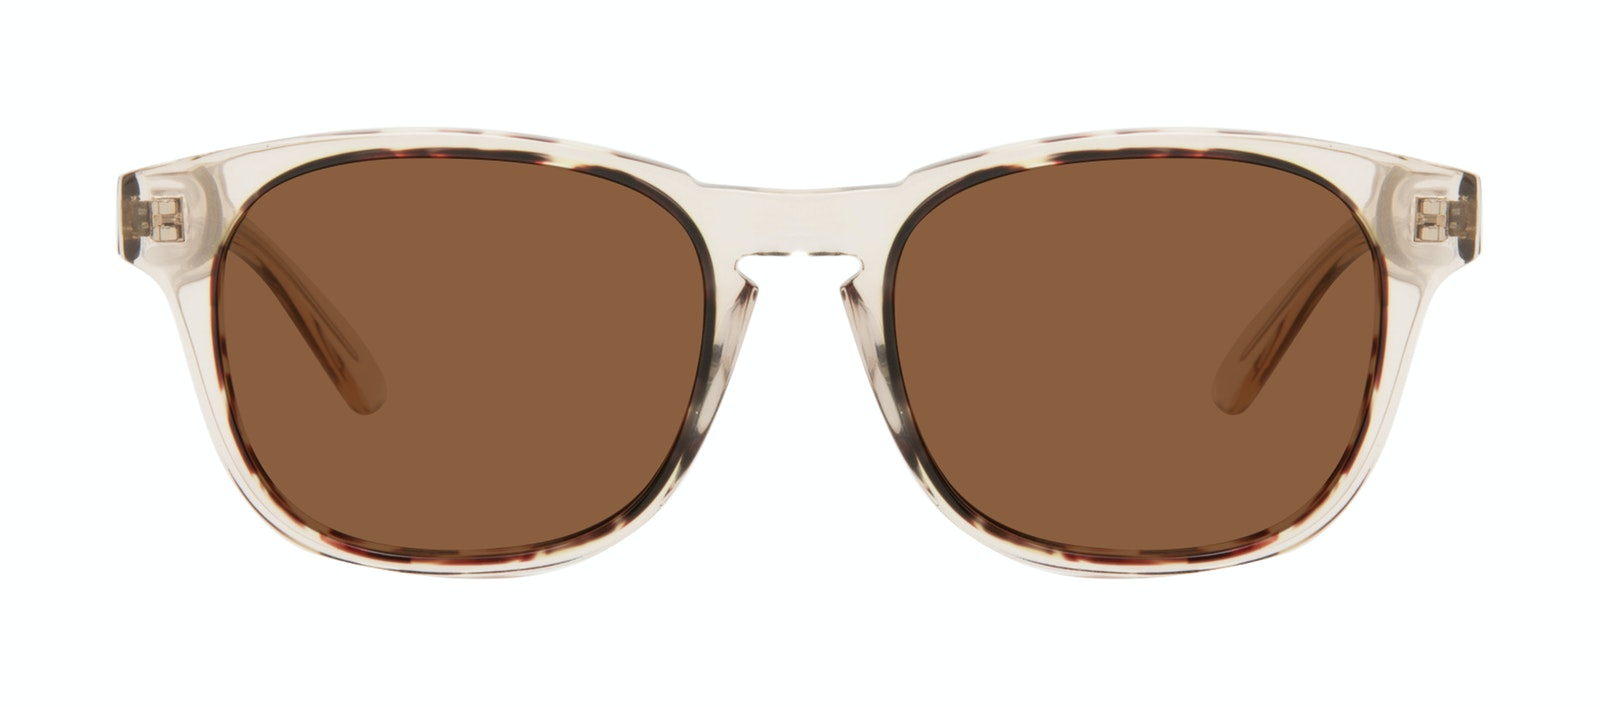 Affordable Fashion Glasses Square Sunglasses Men Outline Golden Tort Front